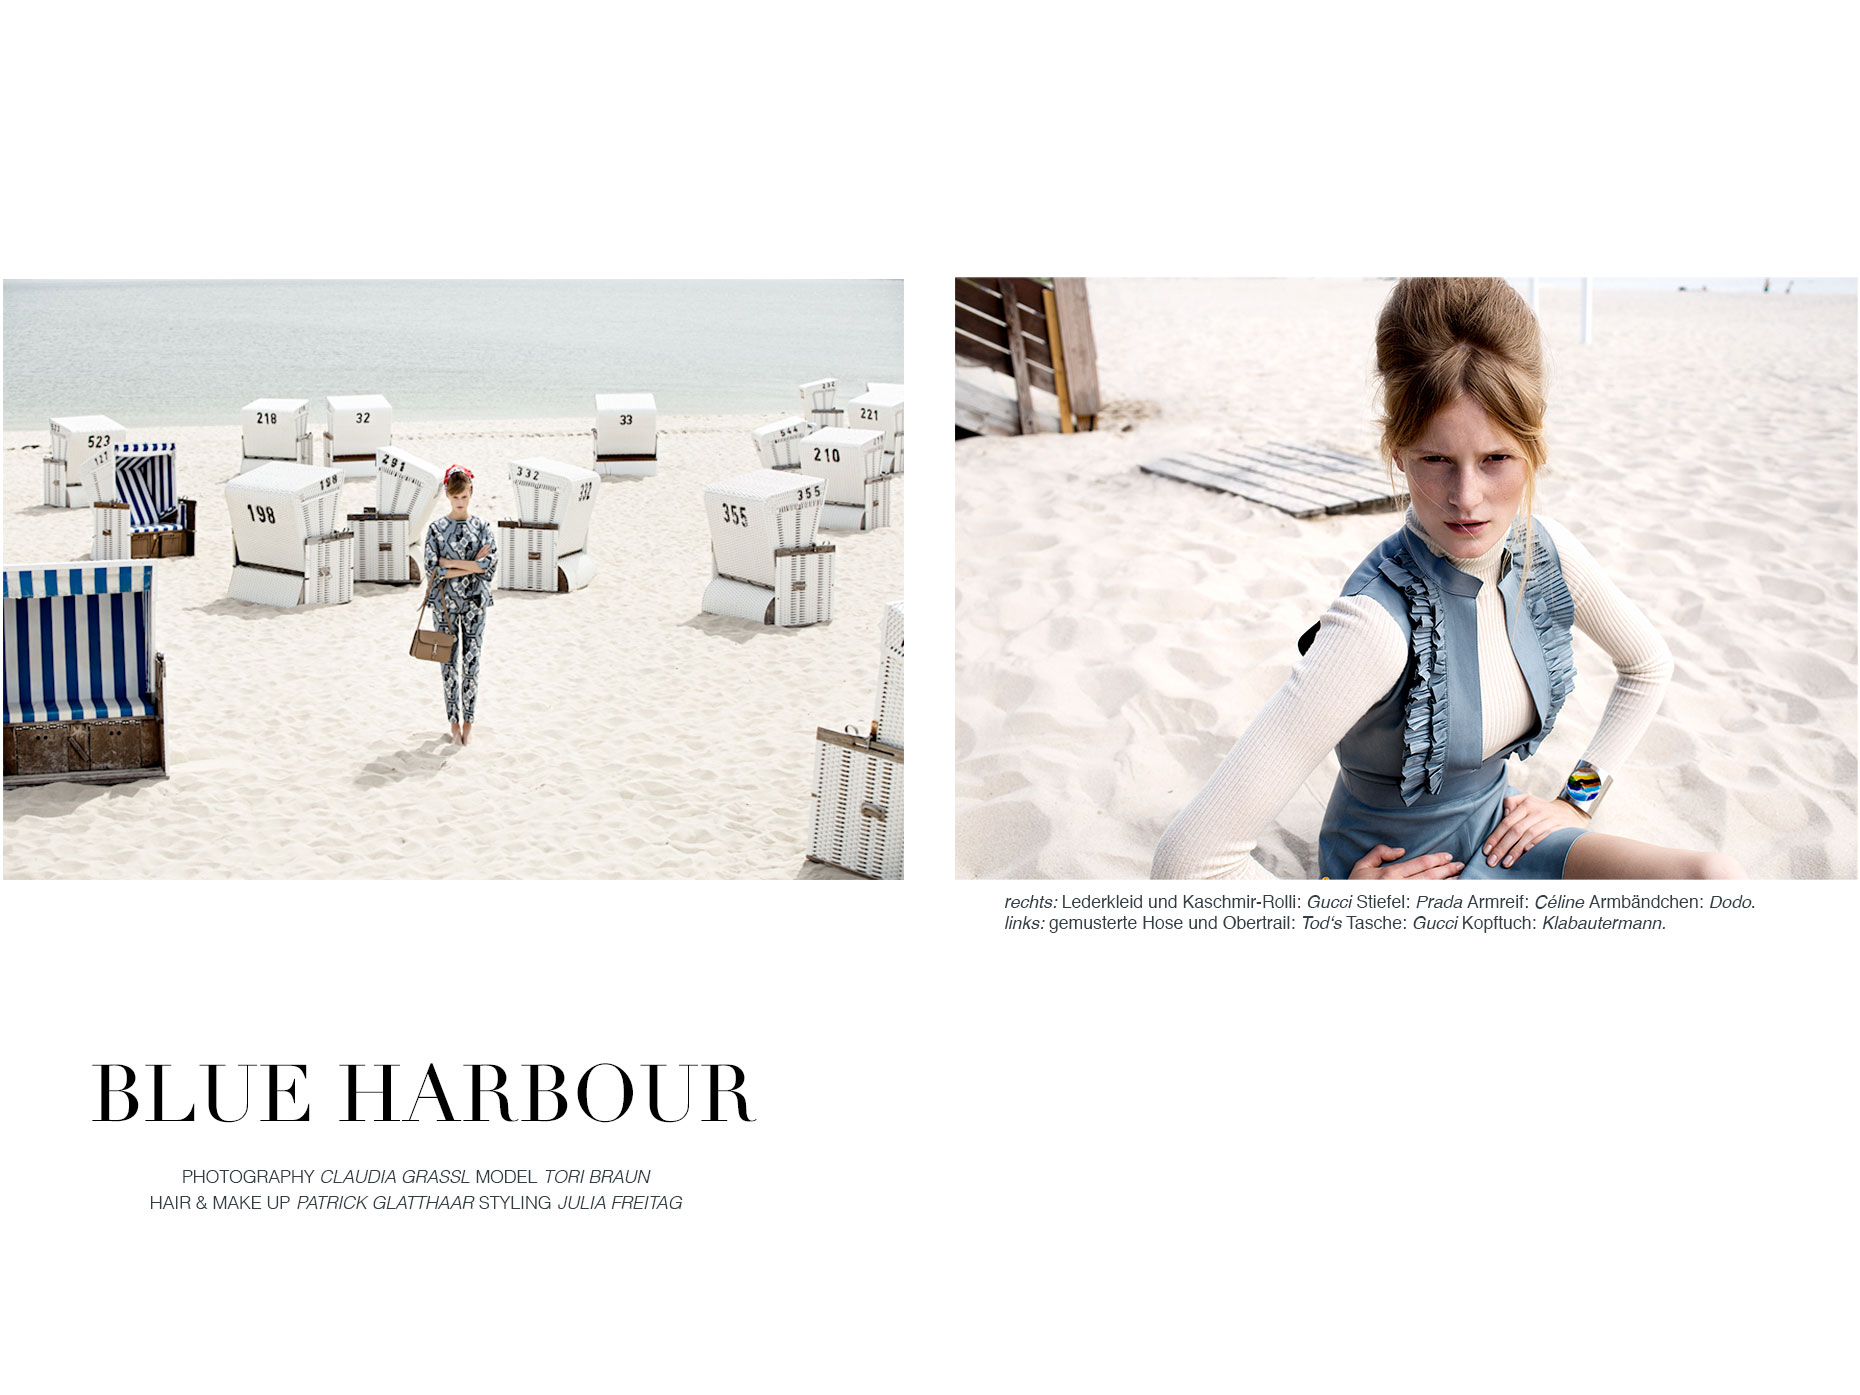 blueharbour_page01_web